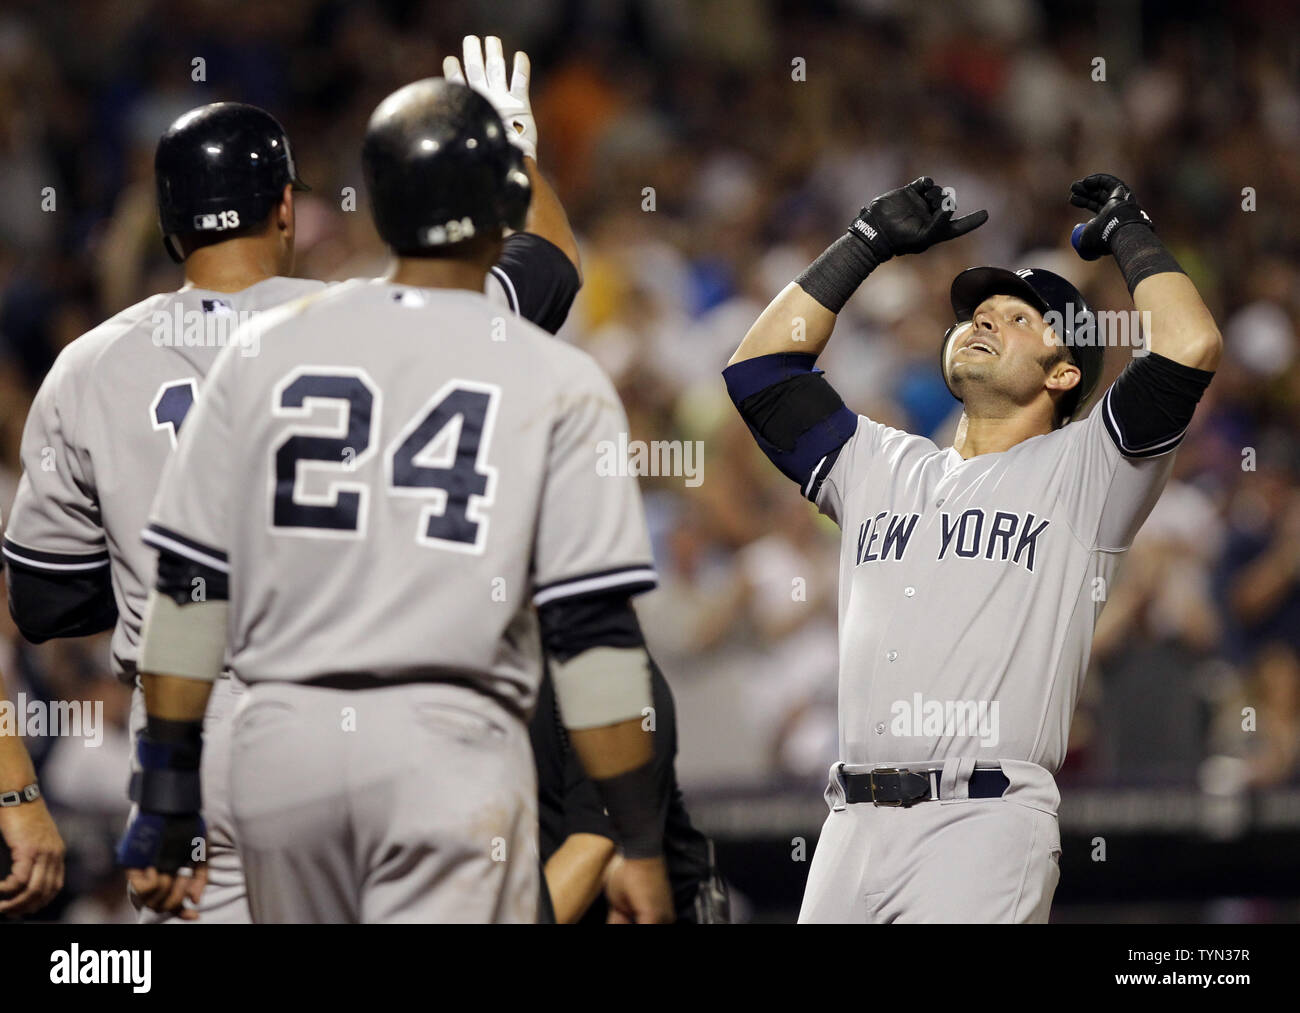 official photos 3327c 3811c New York Yankees Nick Swisher reacts at home plate with Alex ...